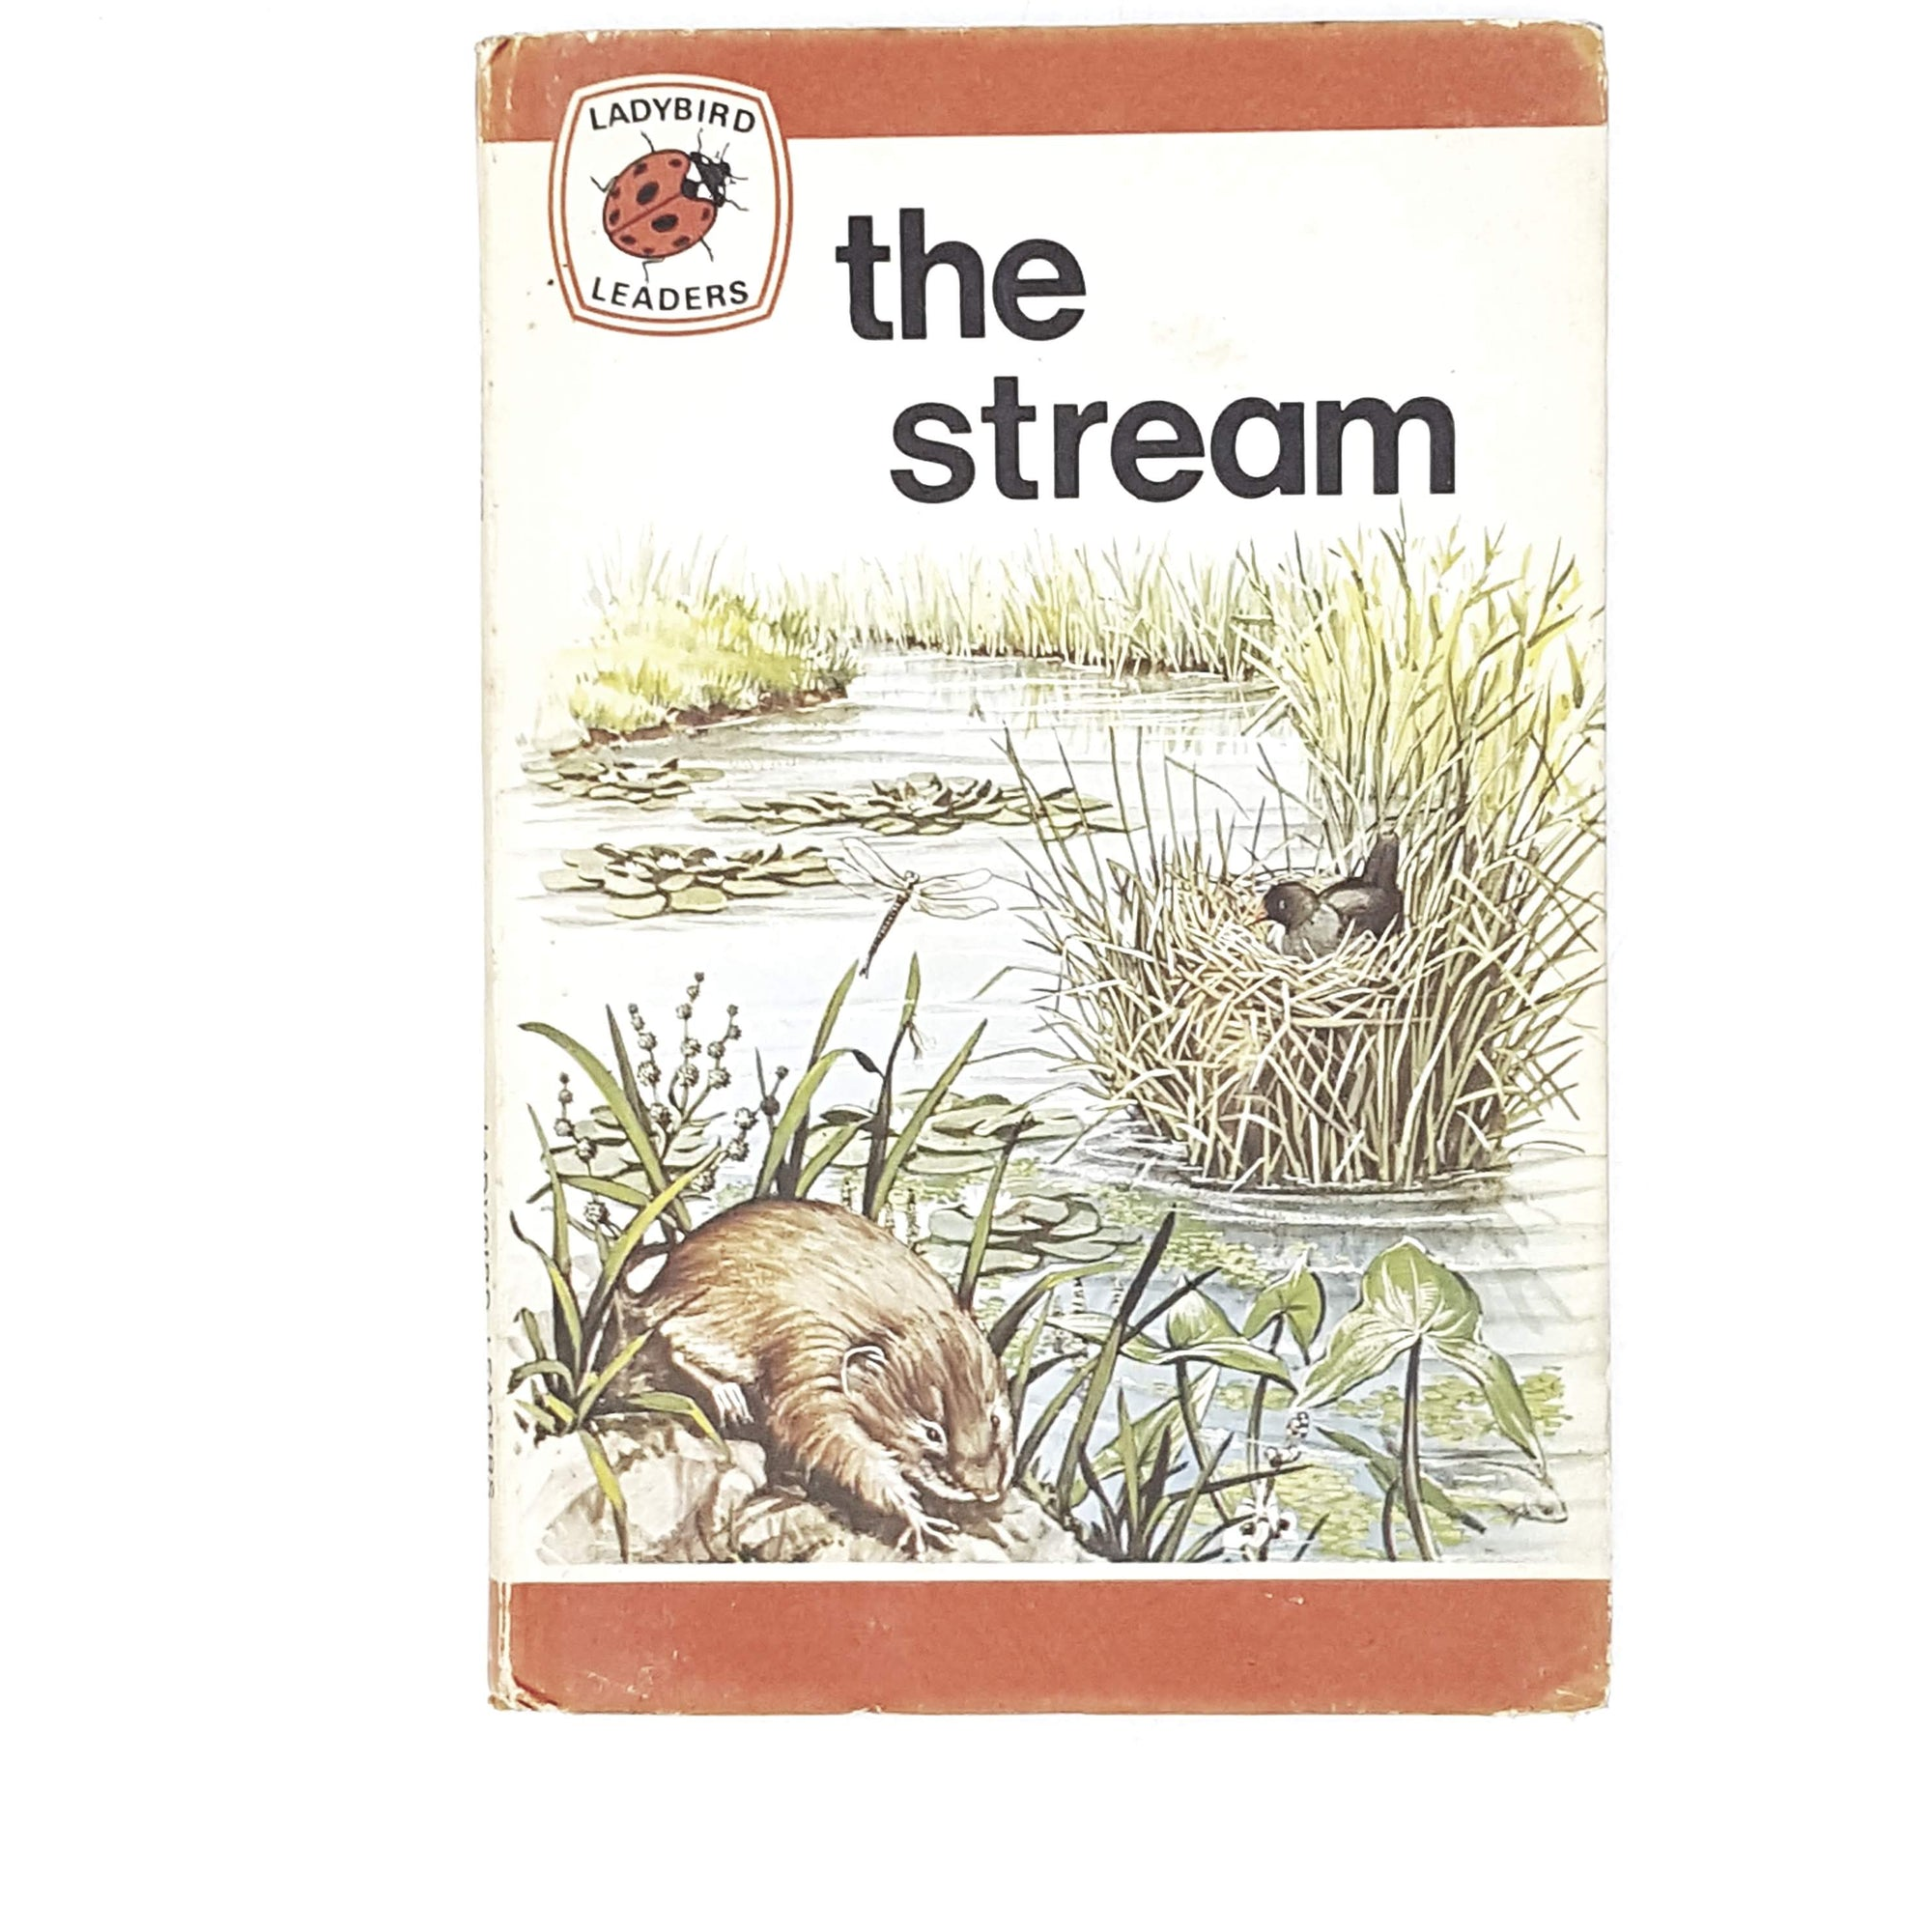 Ladybird Leaders: The Stream 1976